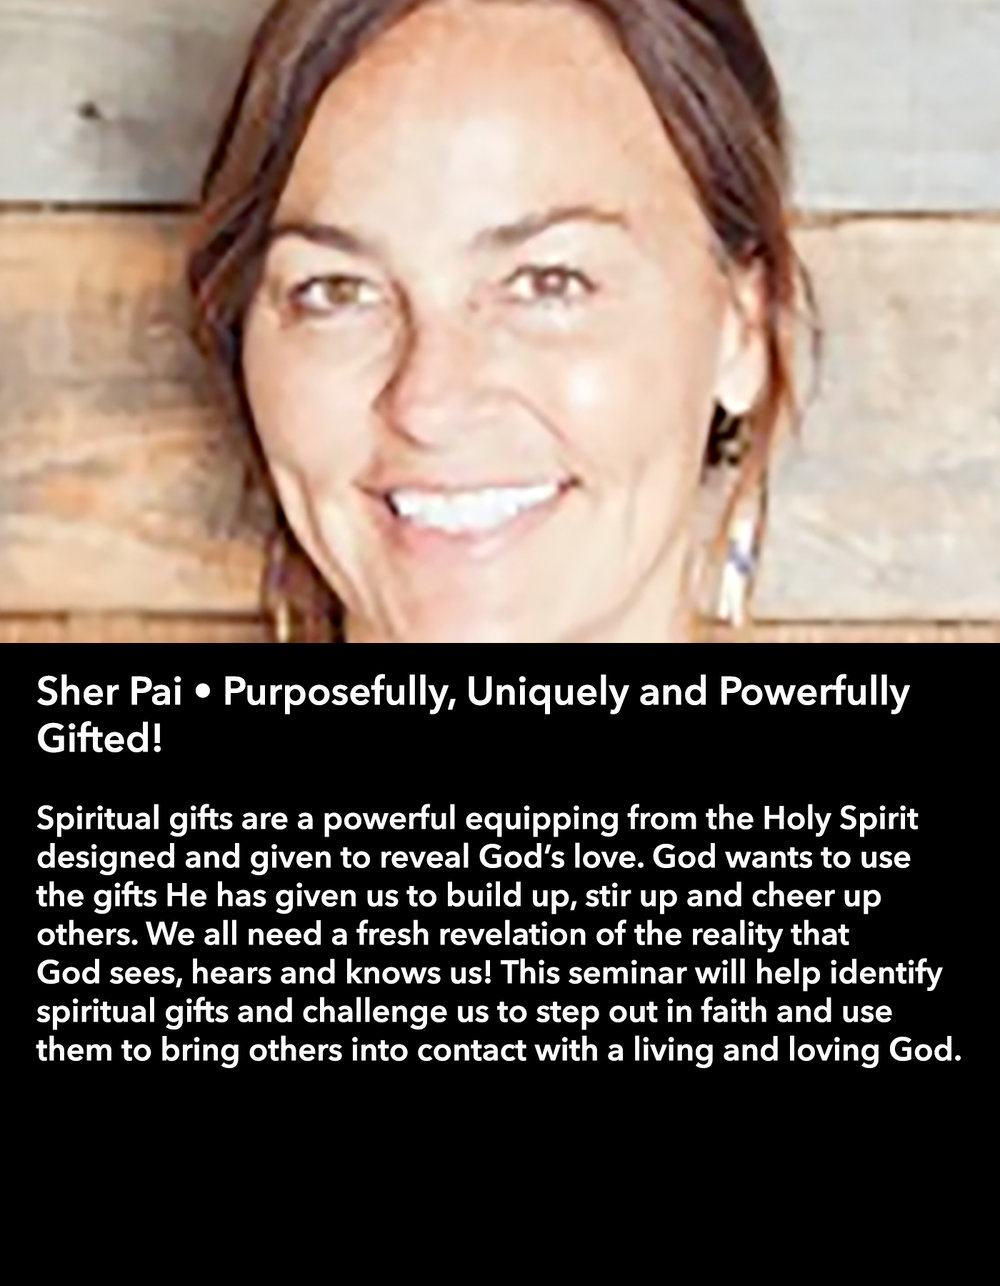 Sher Pai • Purposefully, Uniquely and Powerfully Gifted! • Friday Night, March 17 • 8:30 – 9:45 pm